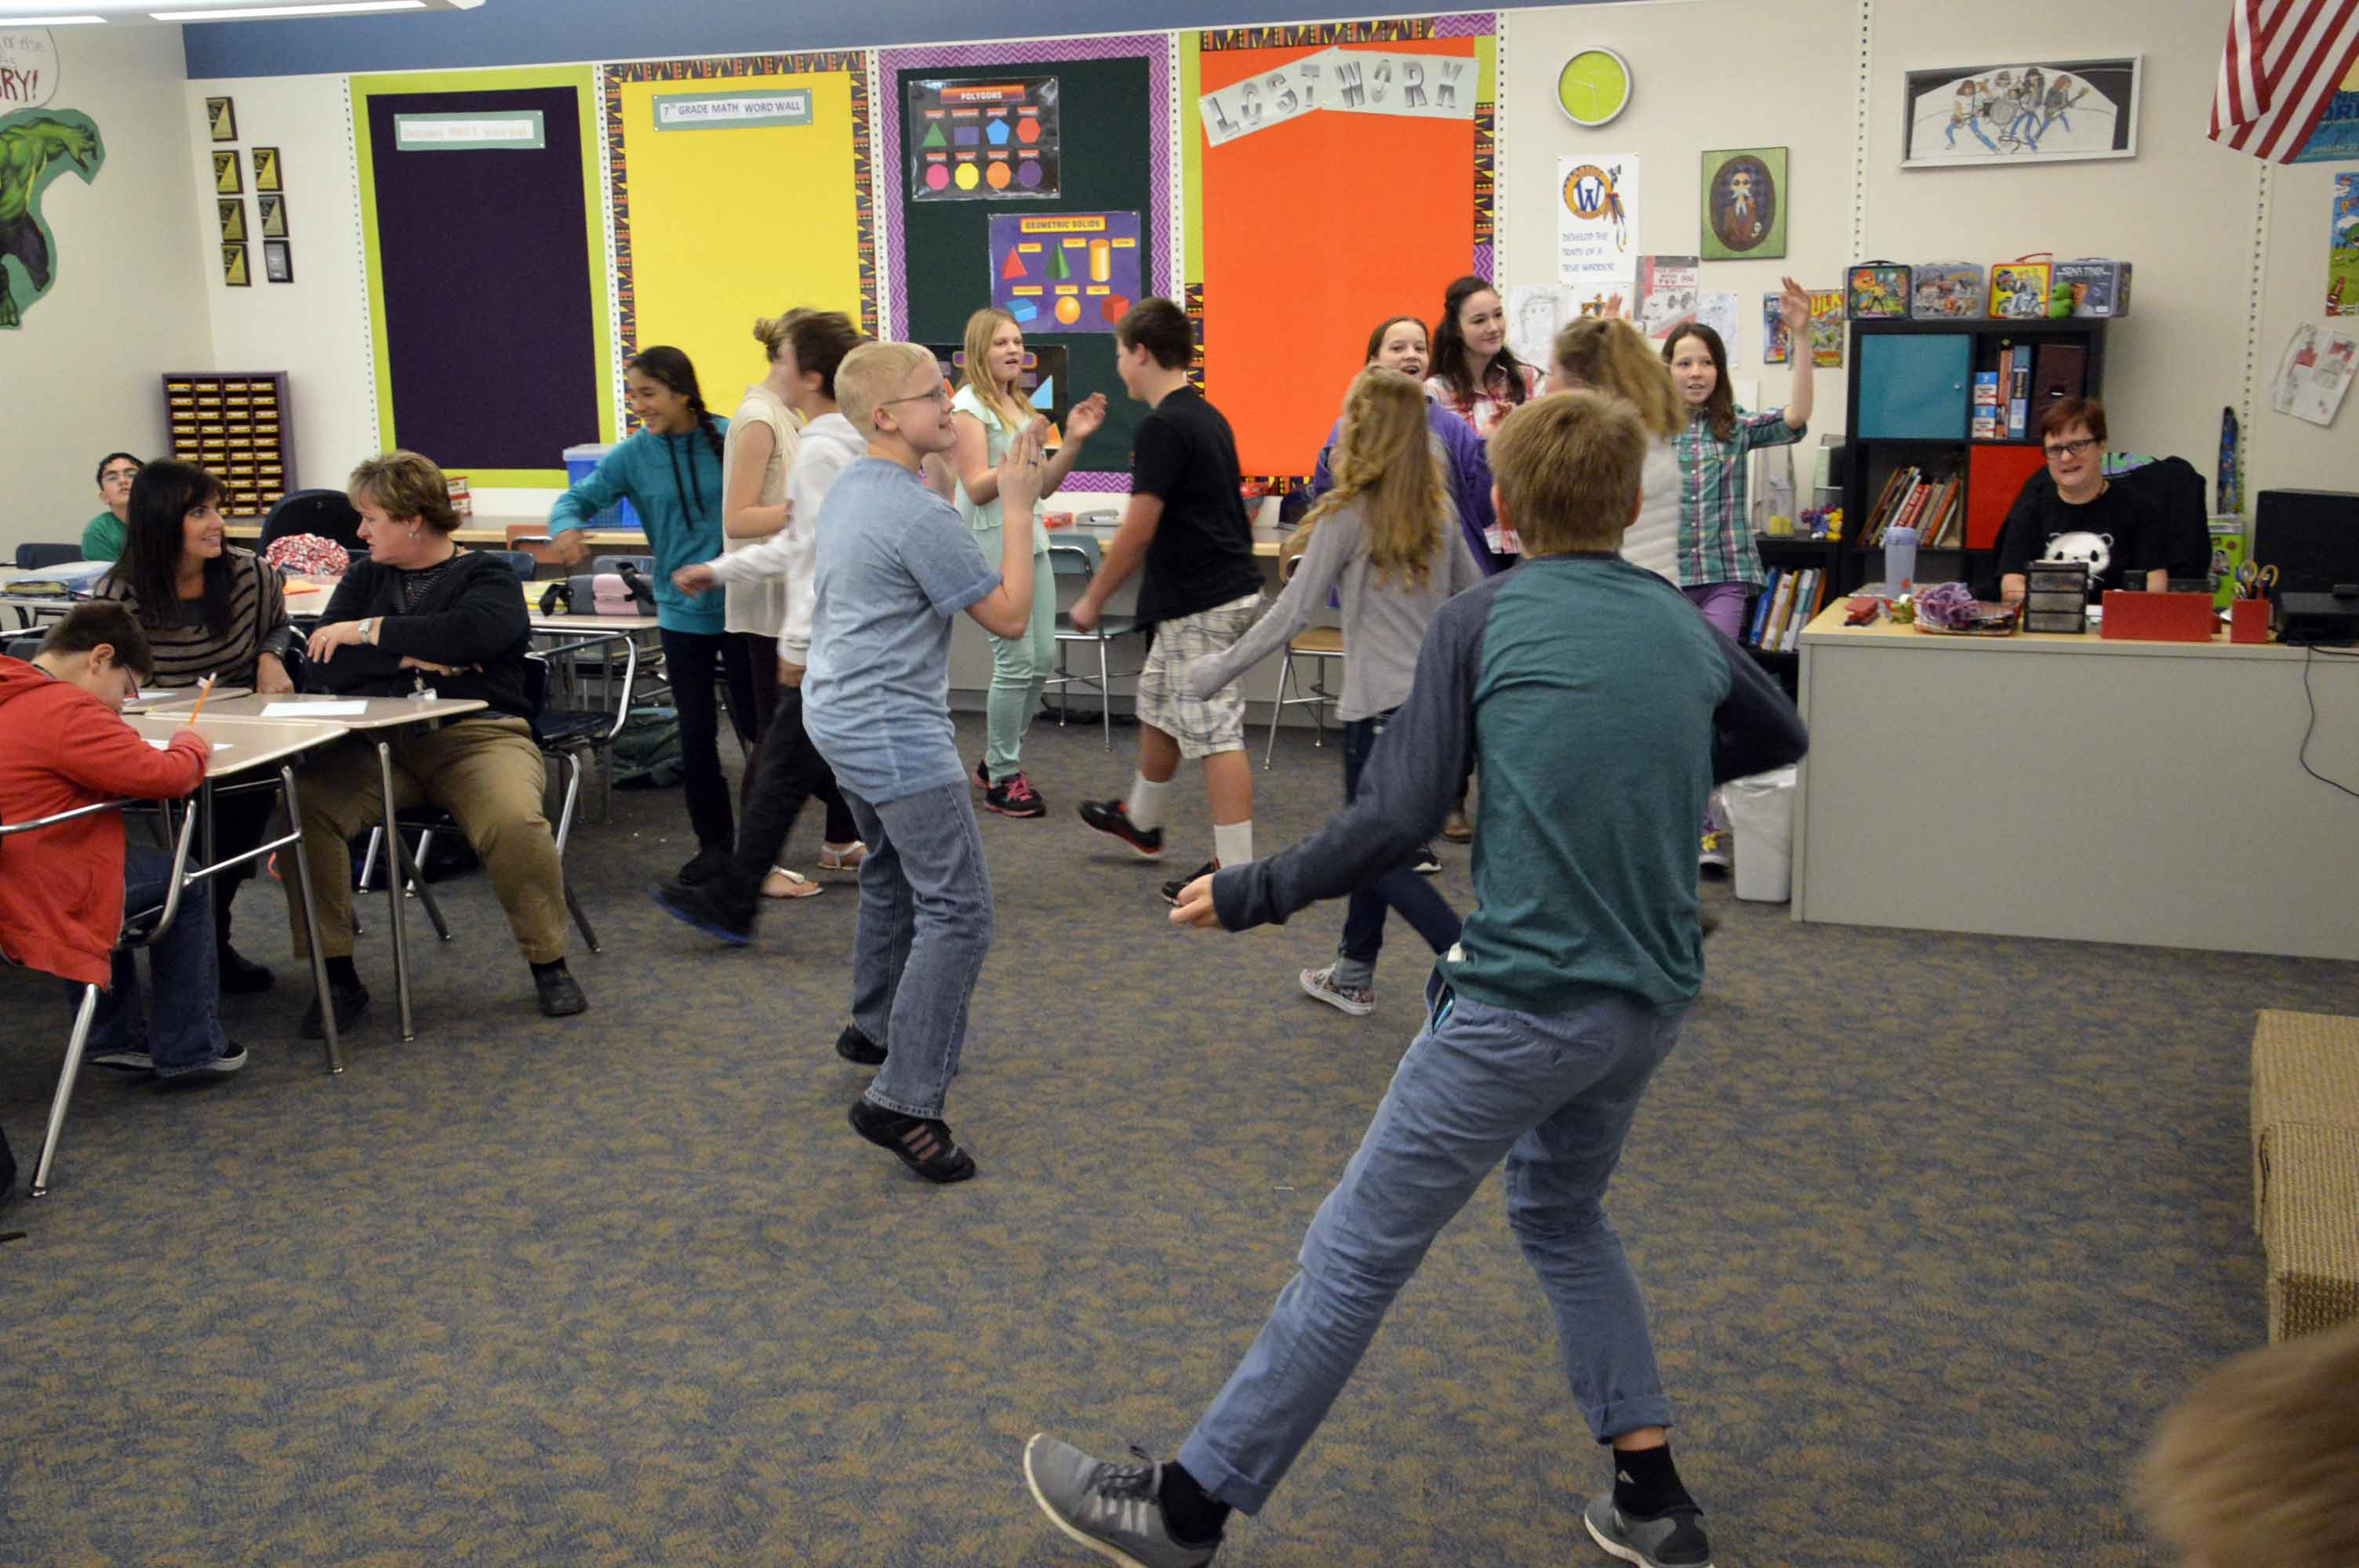 Wasatch Jr High Uses Student Led Workshops To Reach Out To Community Members